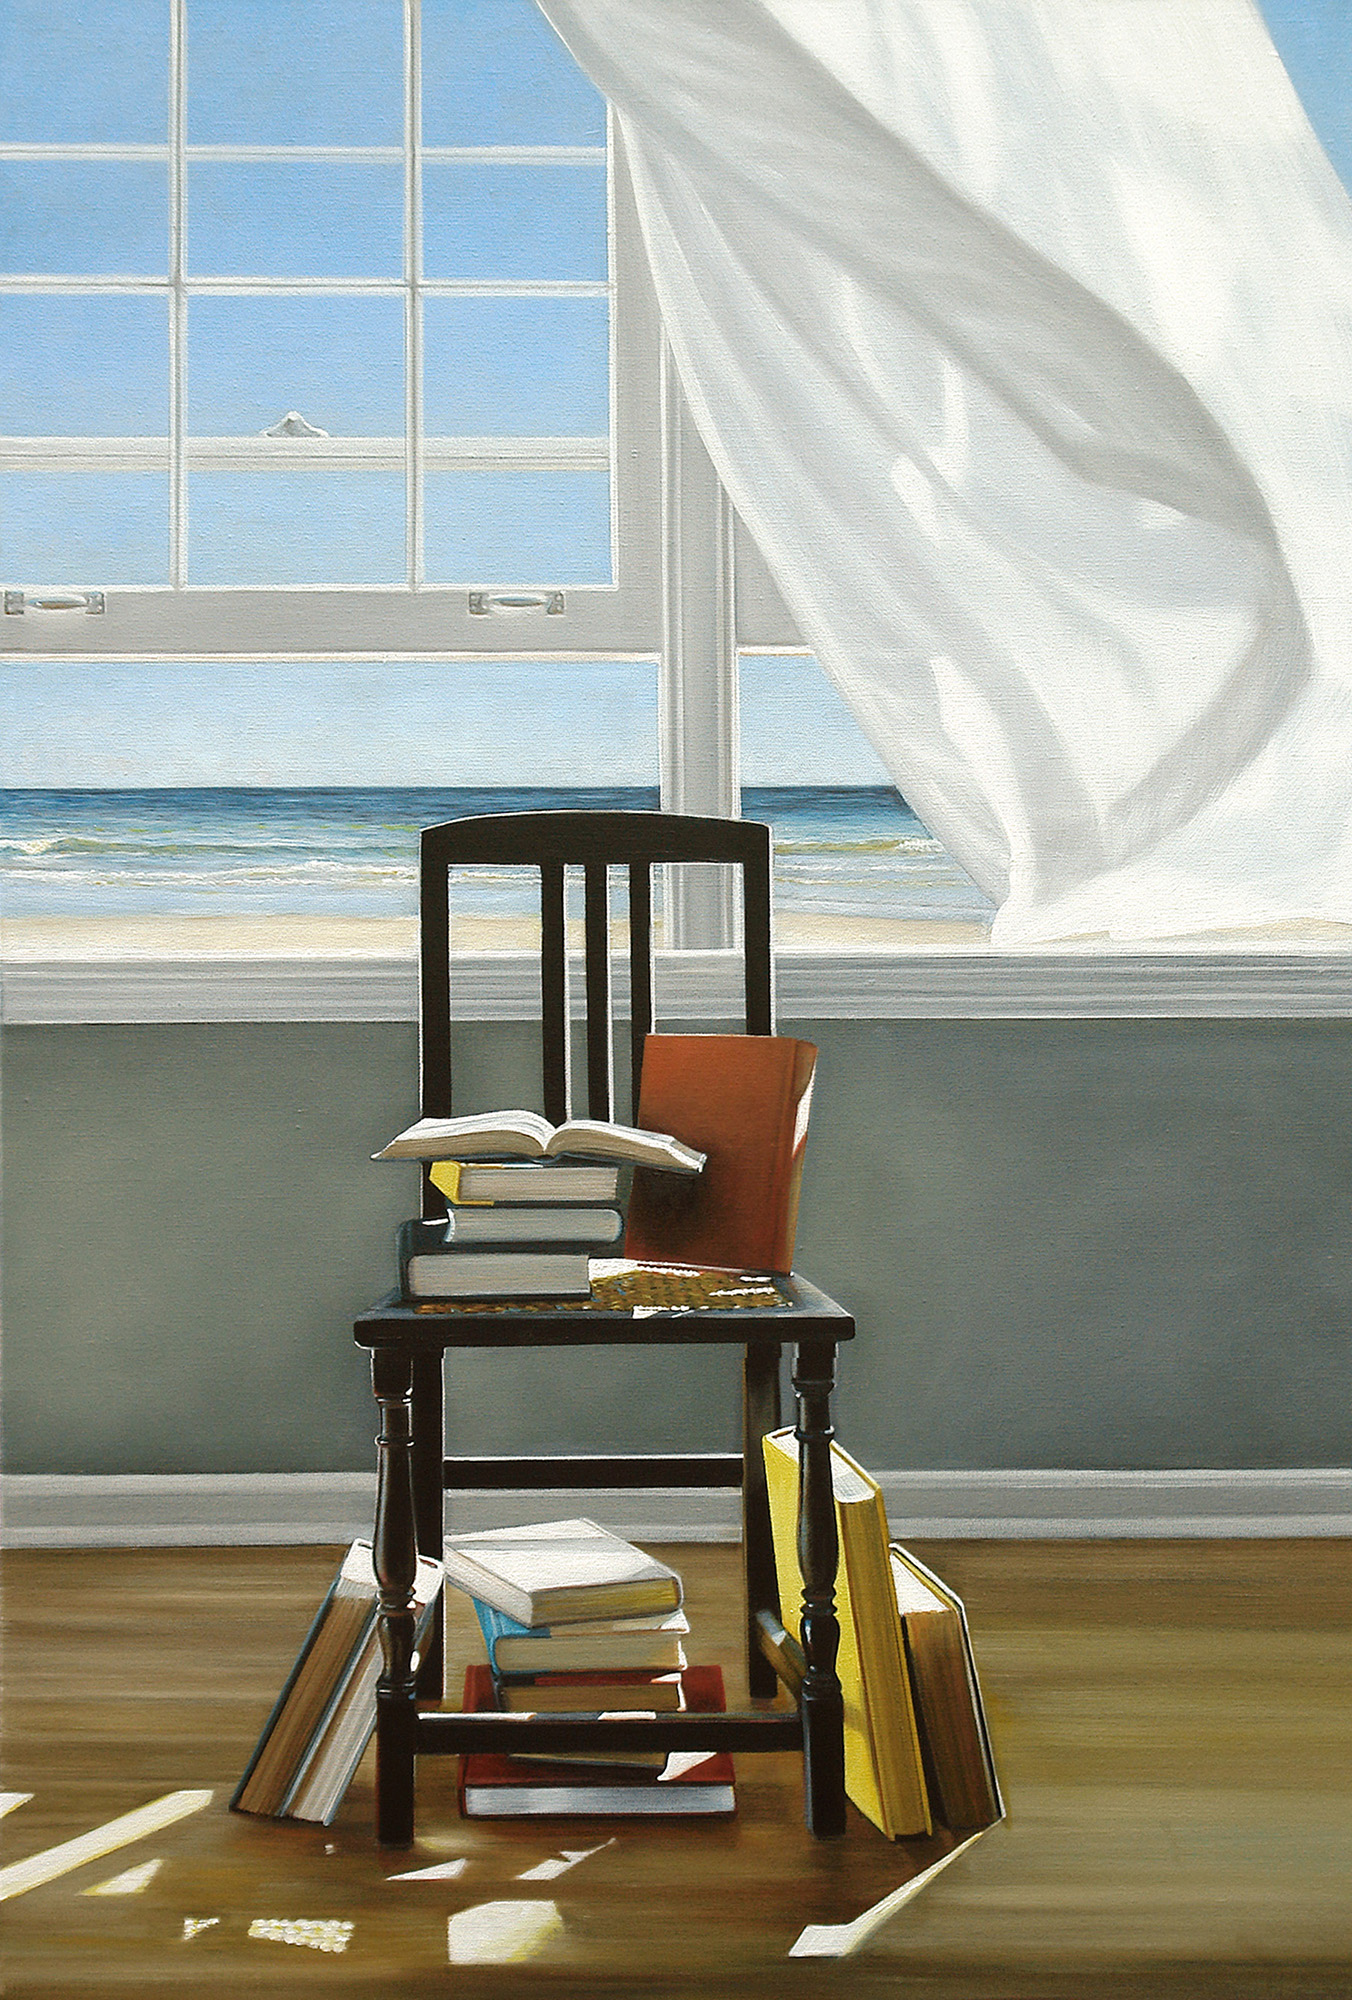 Beach Books No. 2  |  24 x 36  |  Oil on canvas